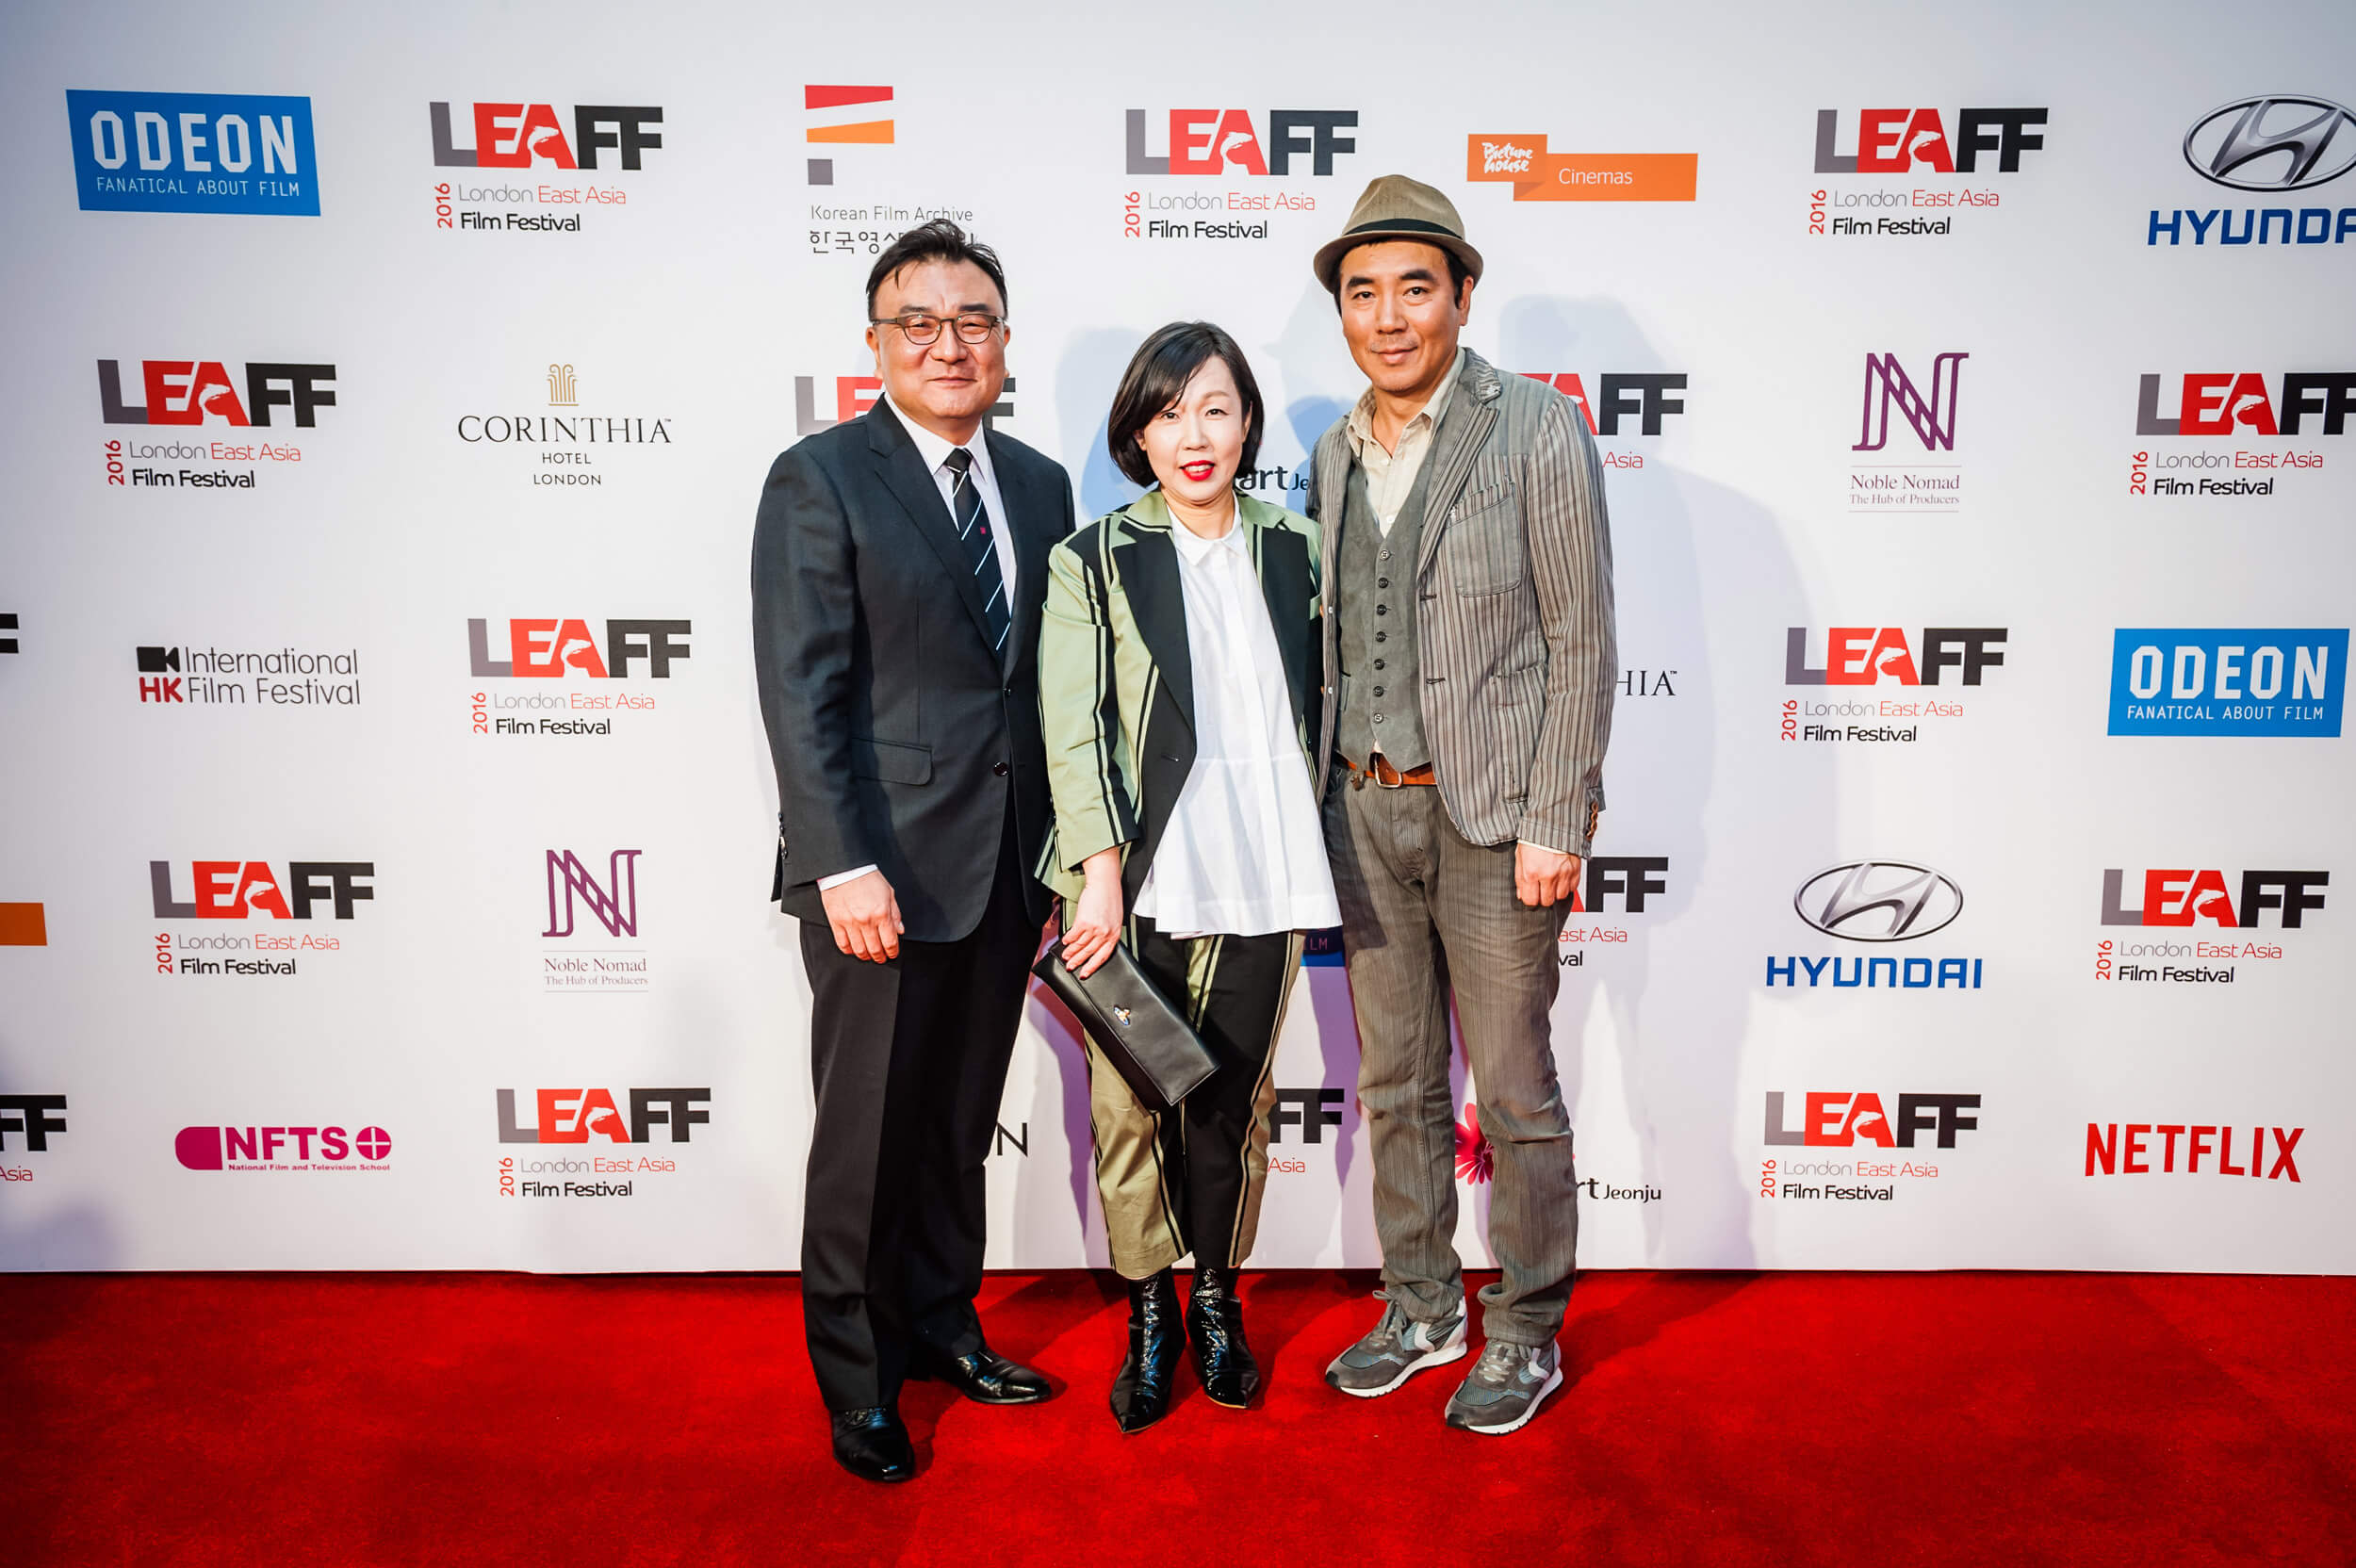 LEAFF-2016--Preview-Photos-10-(final).jpg